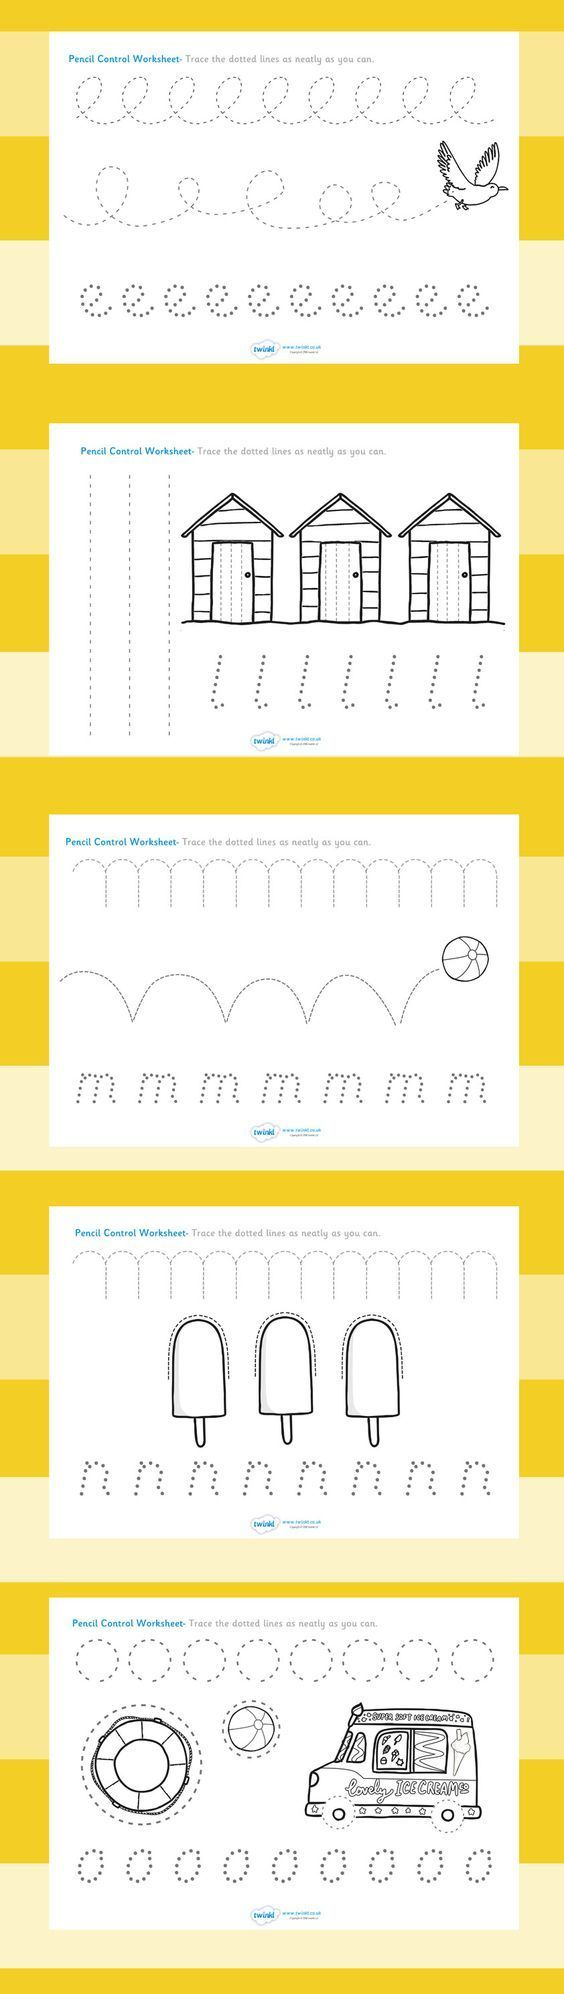 Workbooks letting go of control worksheets : My Kids LOVE these! Free Pencil Control Worksheets! Perfect for ...